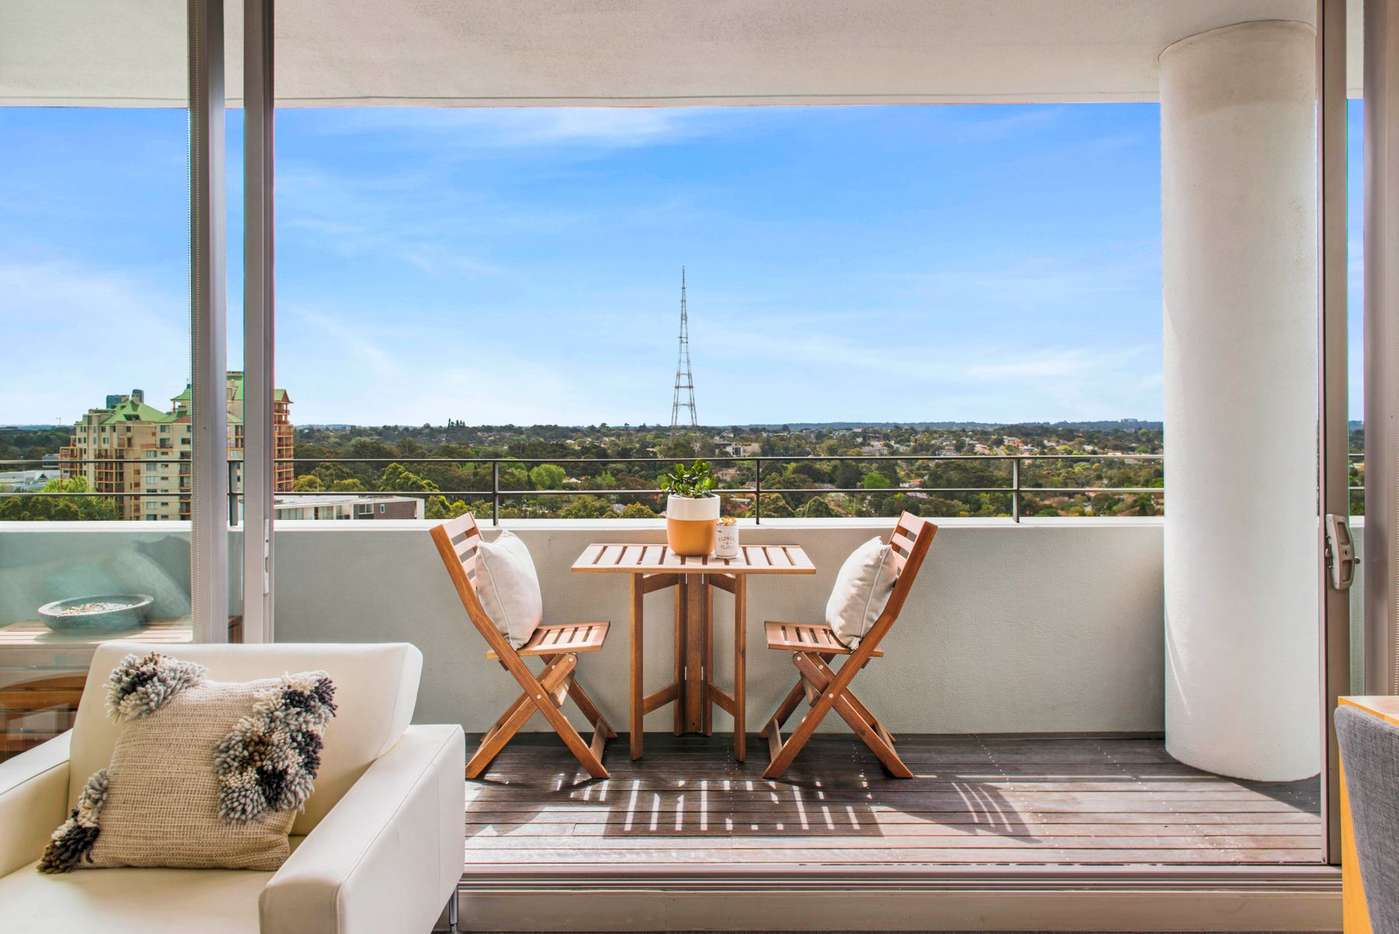 Main view of Homely apartment listing, 804/11 Chandos Street, St Leonards, NSW 2065